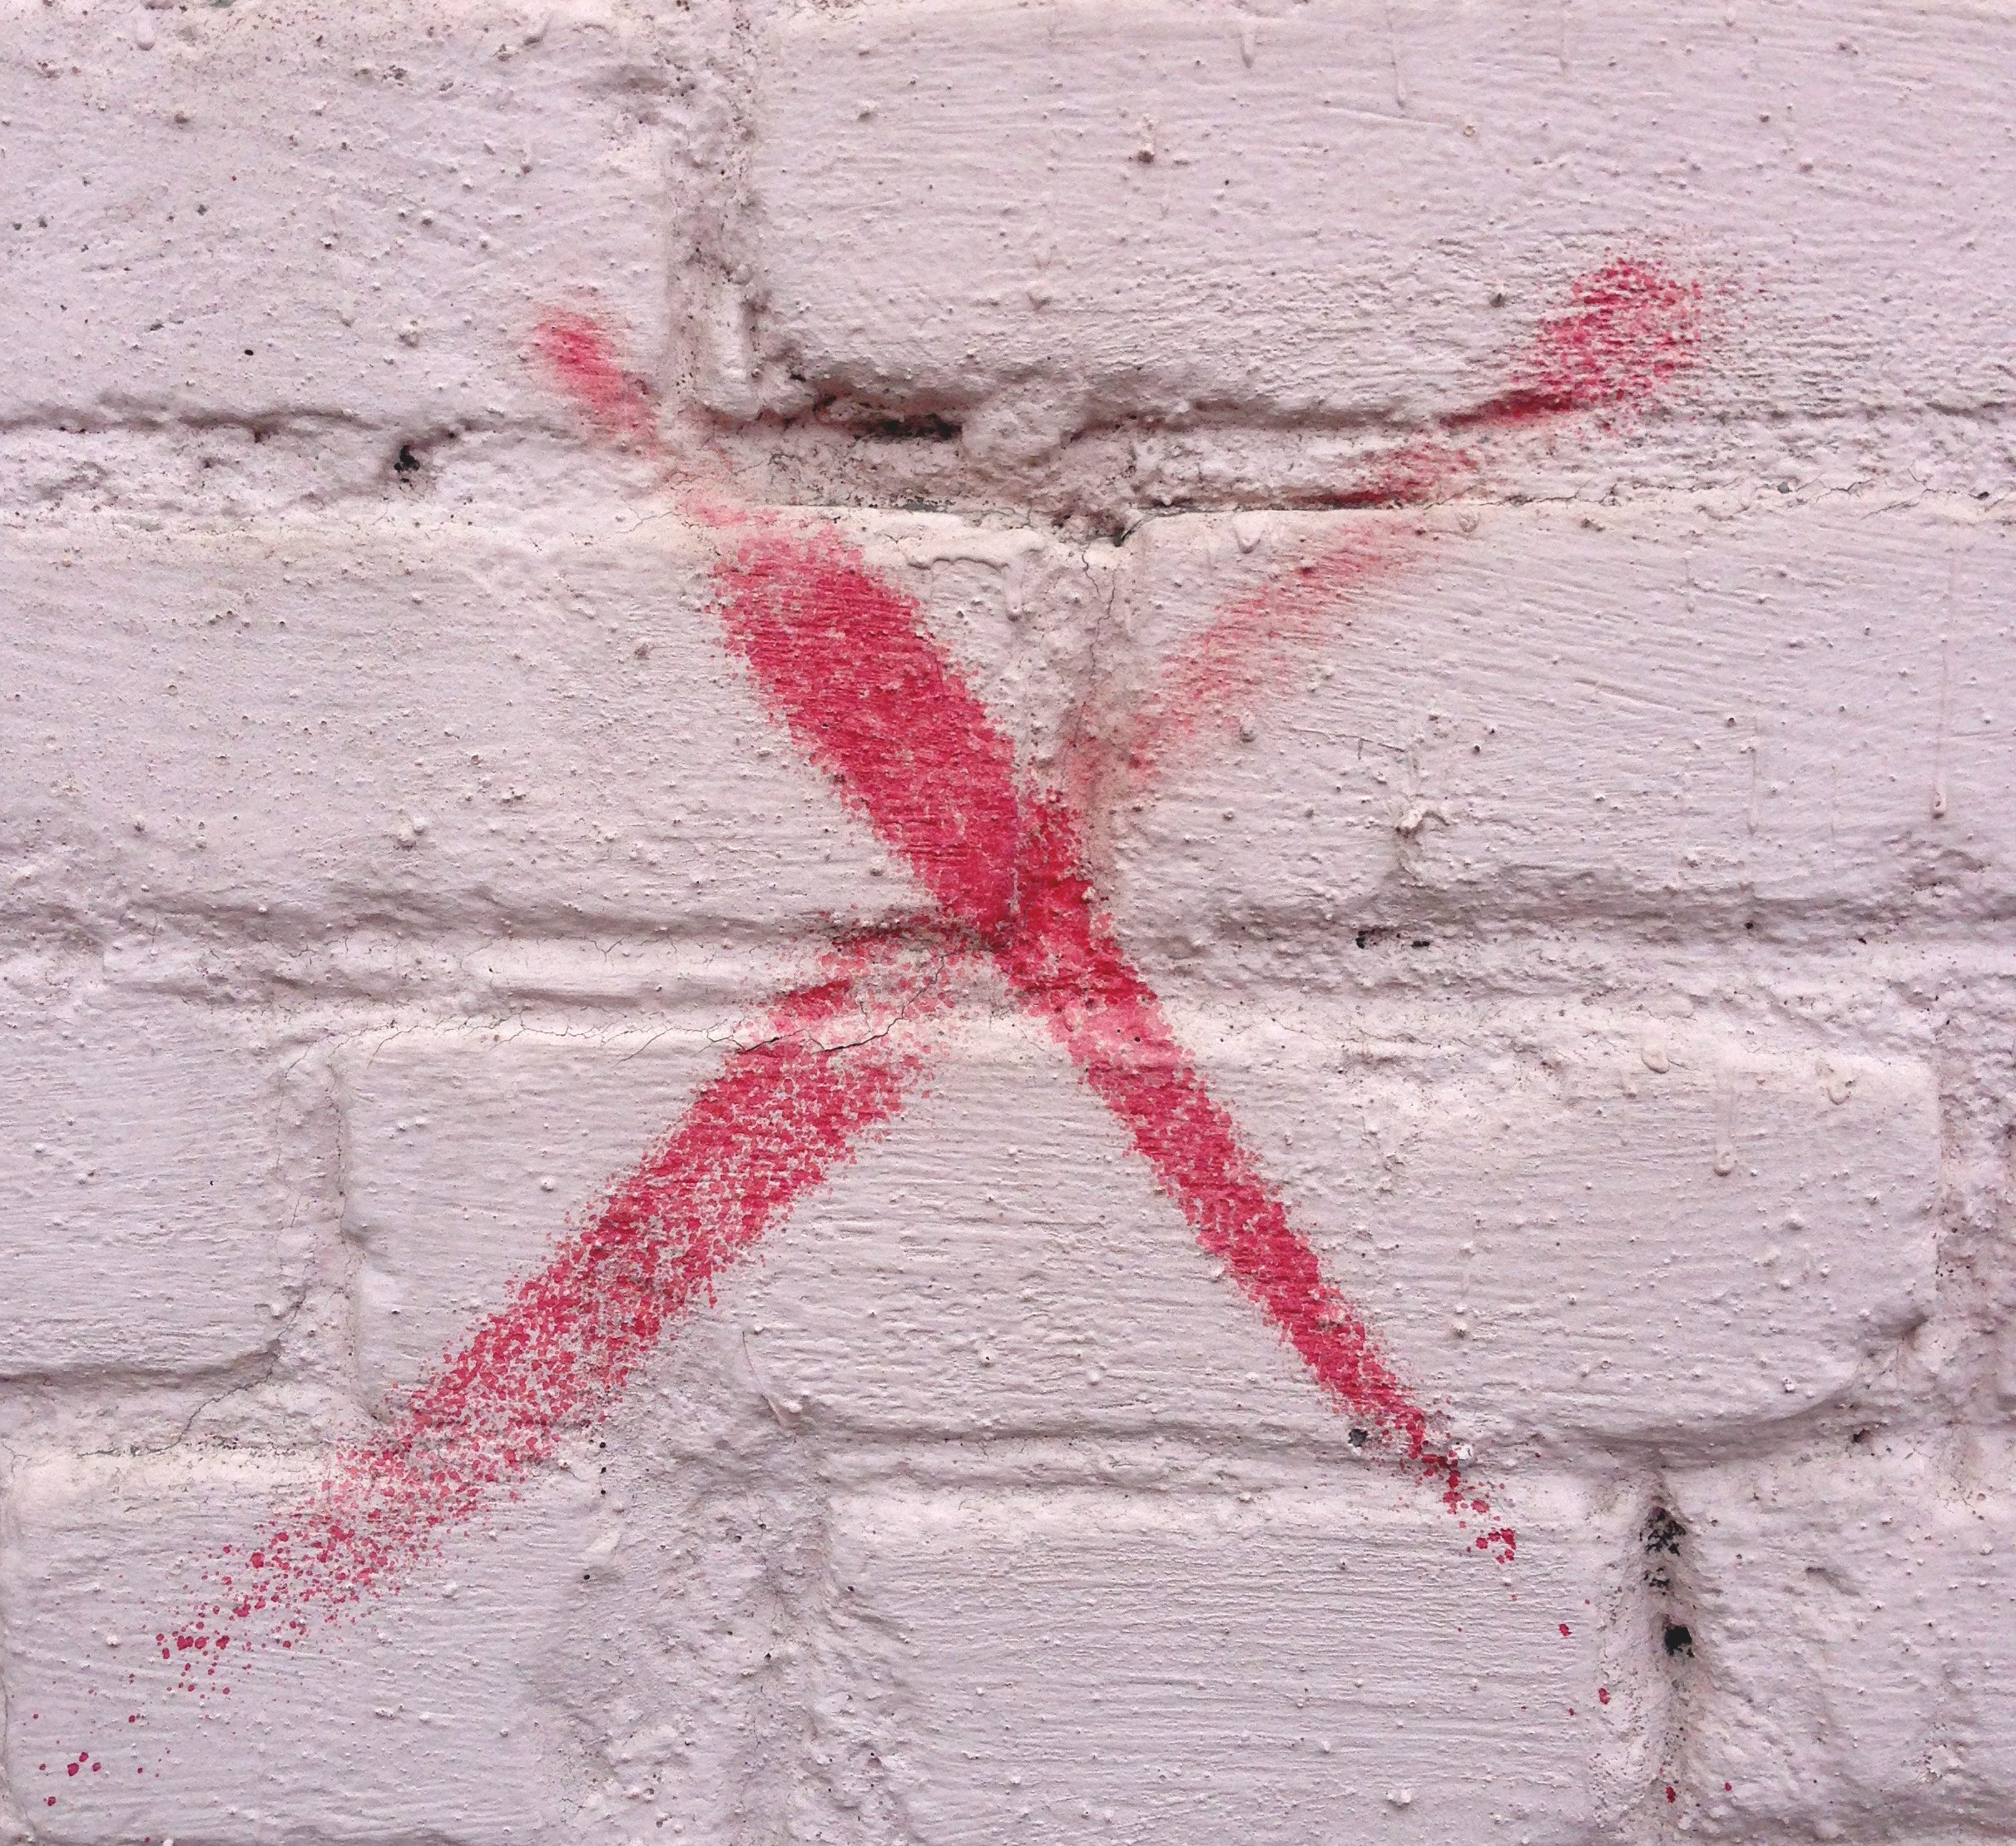 x painted on a brick wall